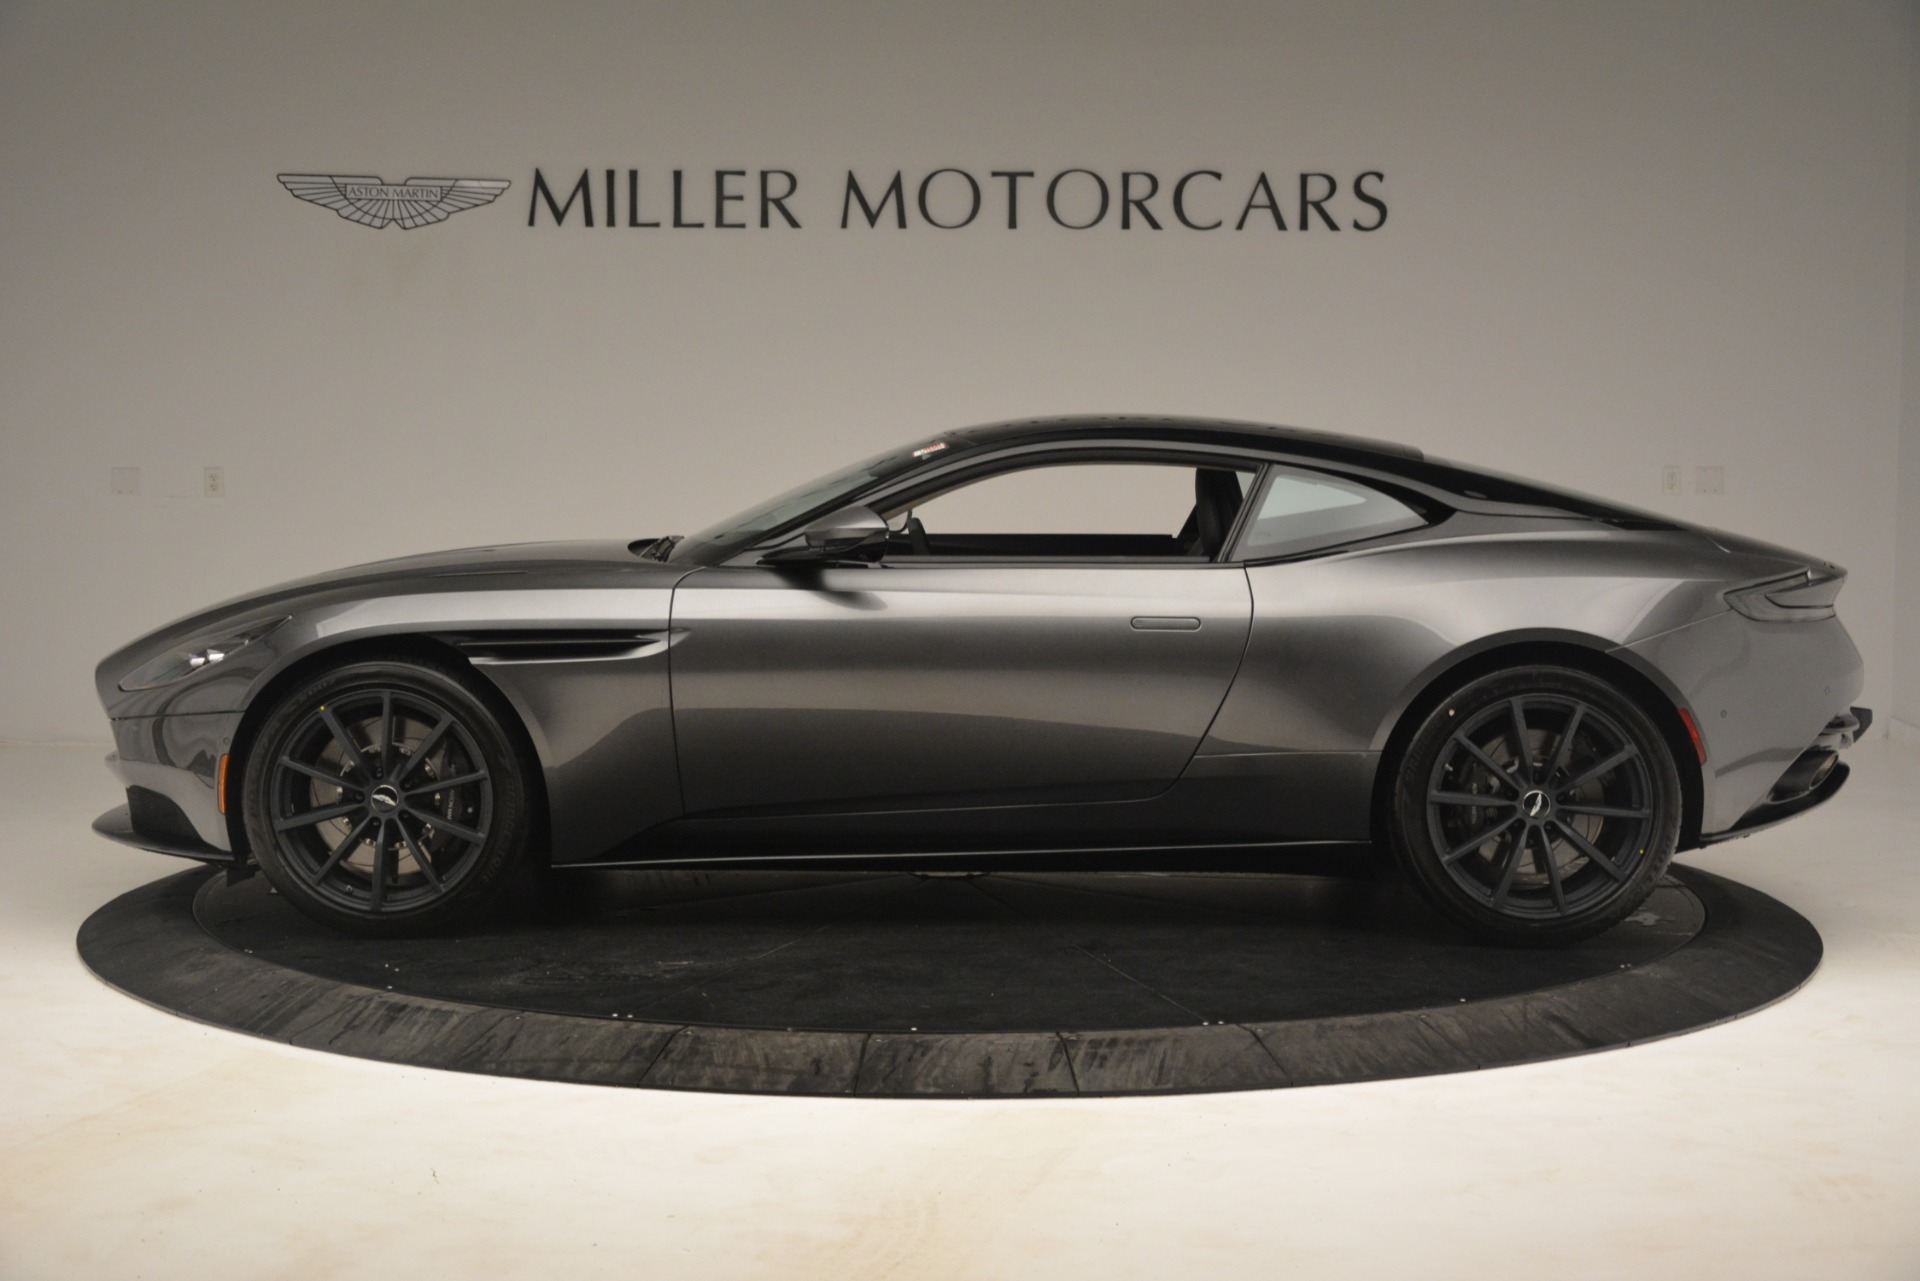 New 2019 Aston Martin DB11 V12 AMR Coupe For Sale In Westport, CT 3123_p3